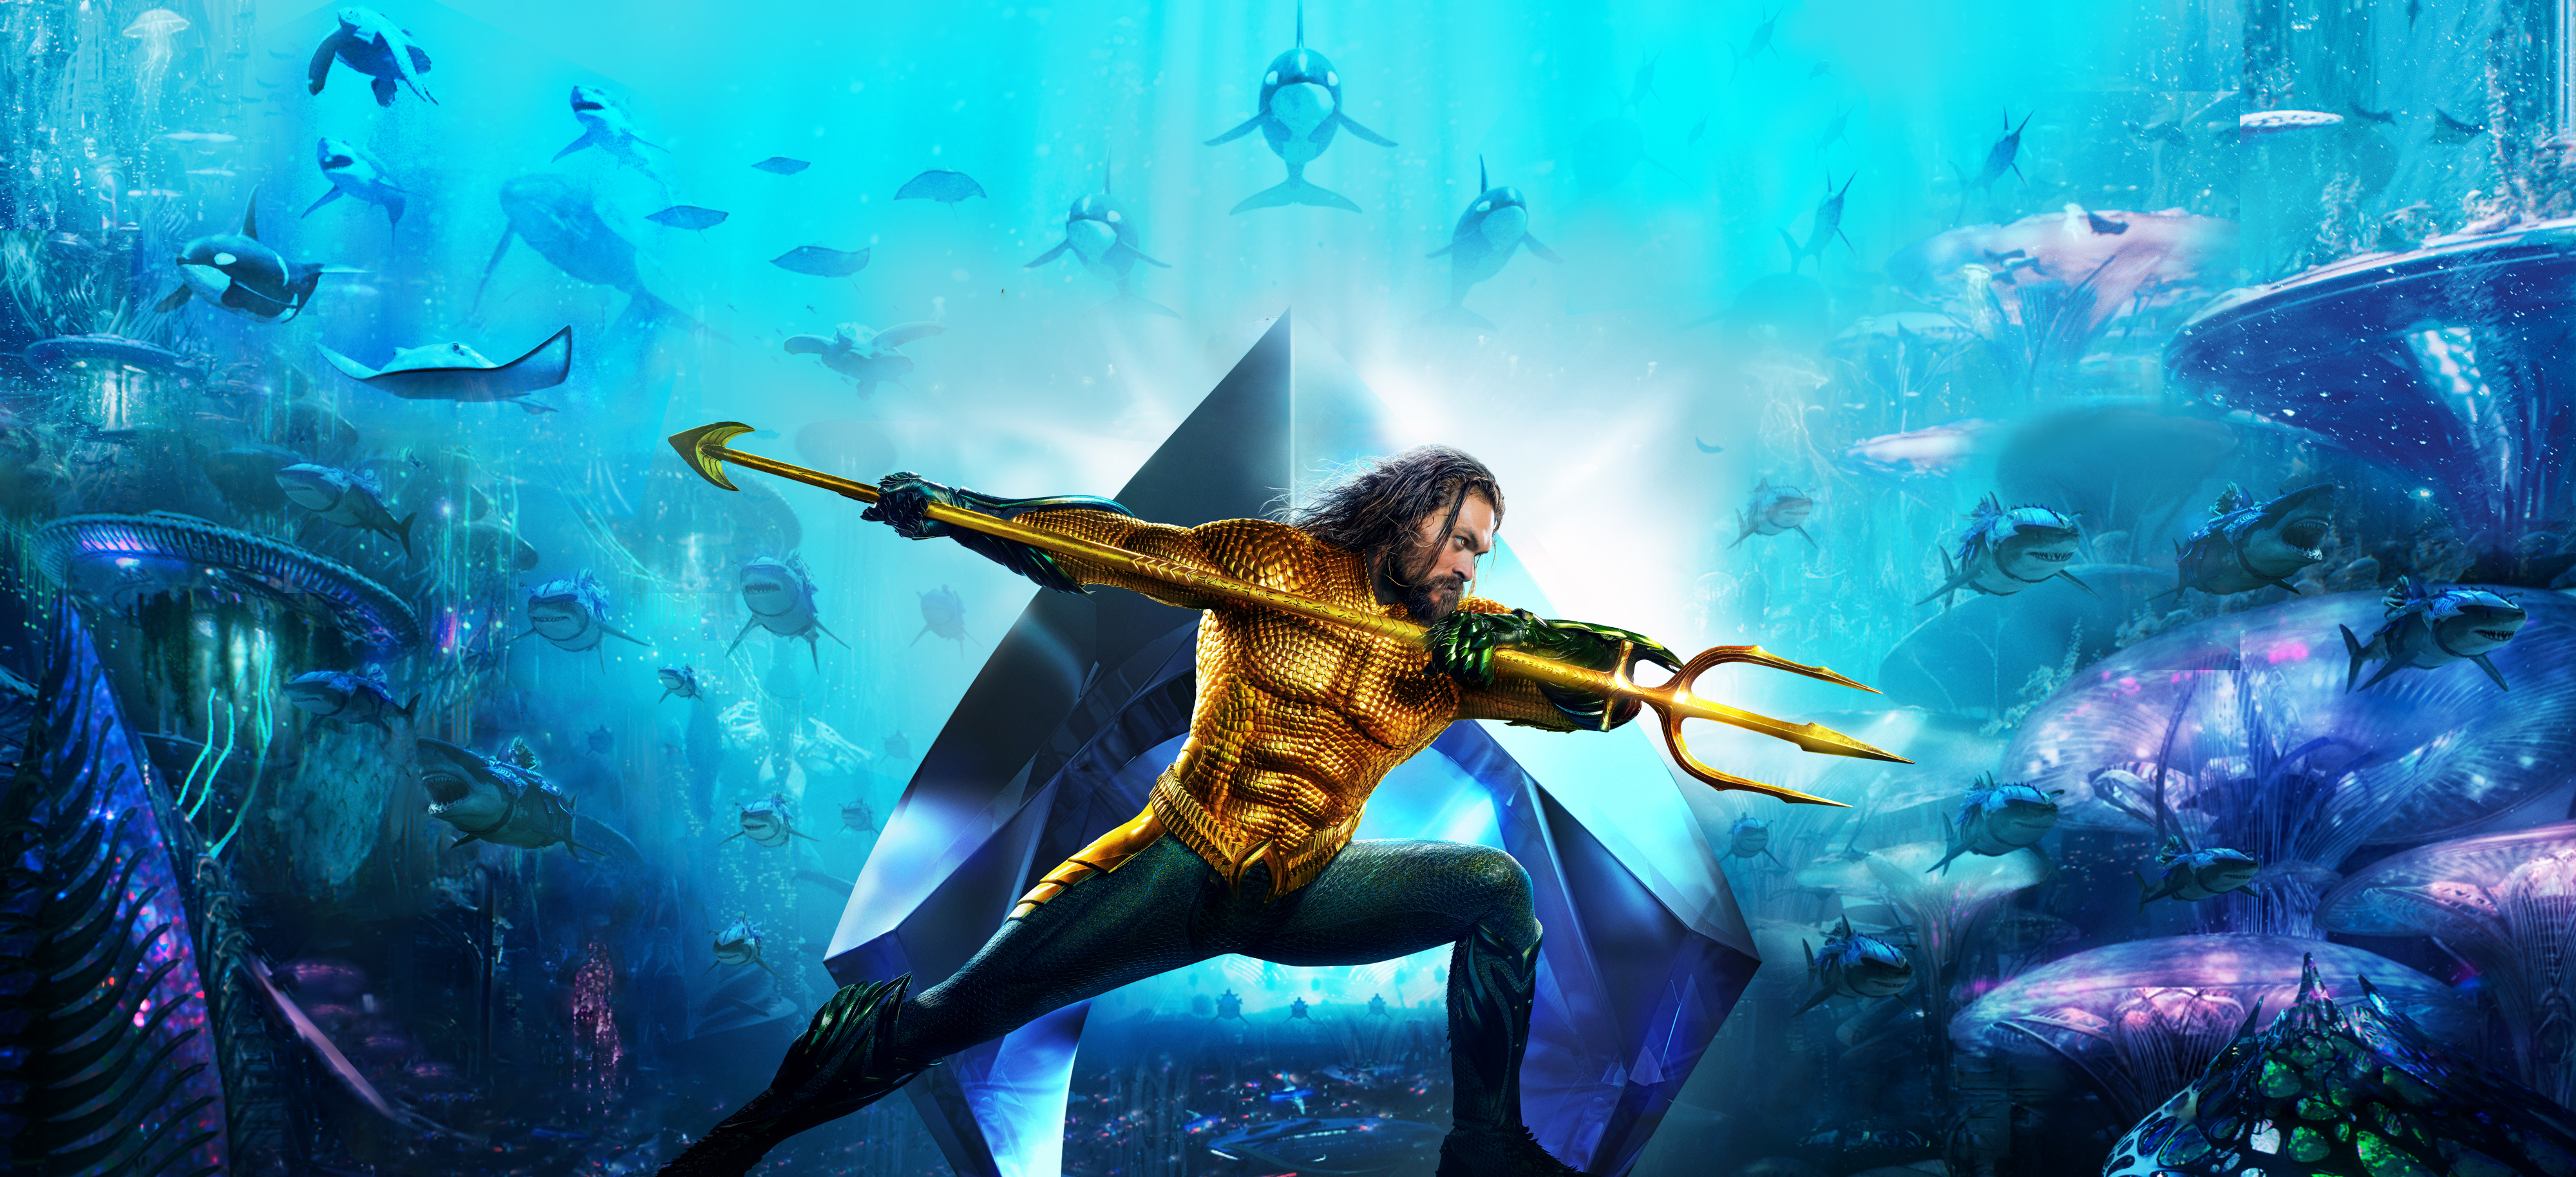 Movie Poster 2019: 3840x2160 Aquaman Movie New Poster 2018 4k HD 4k